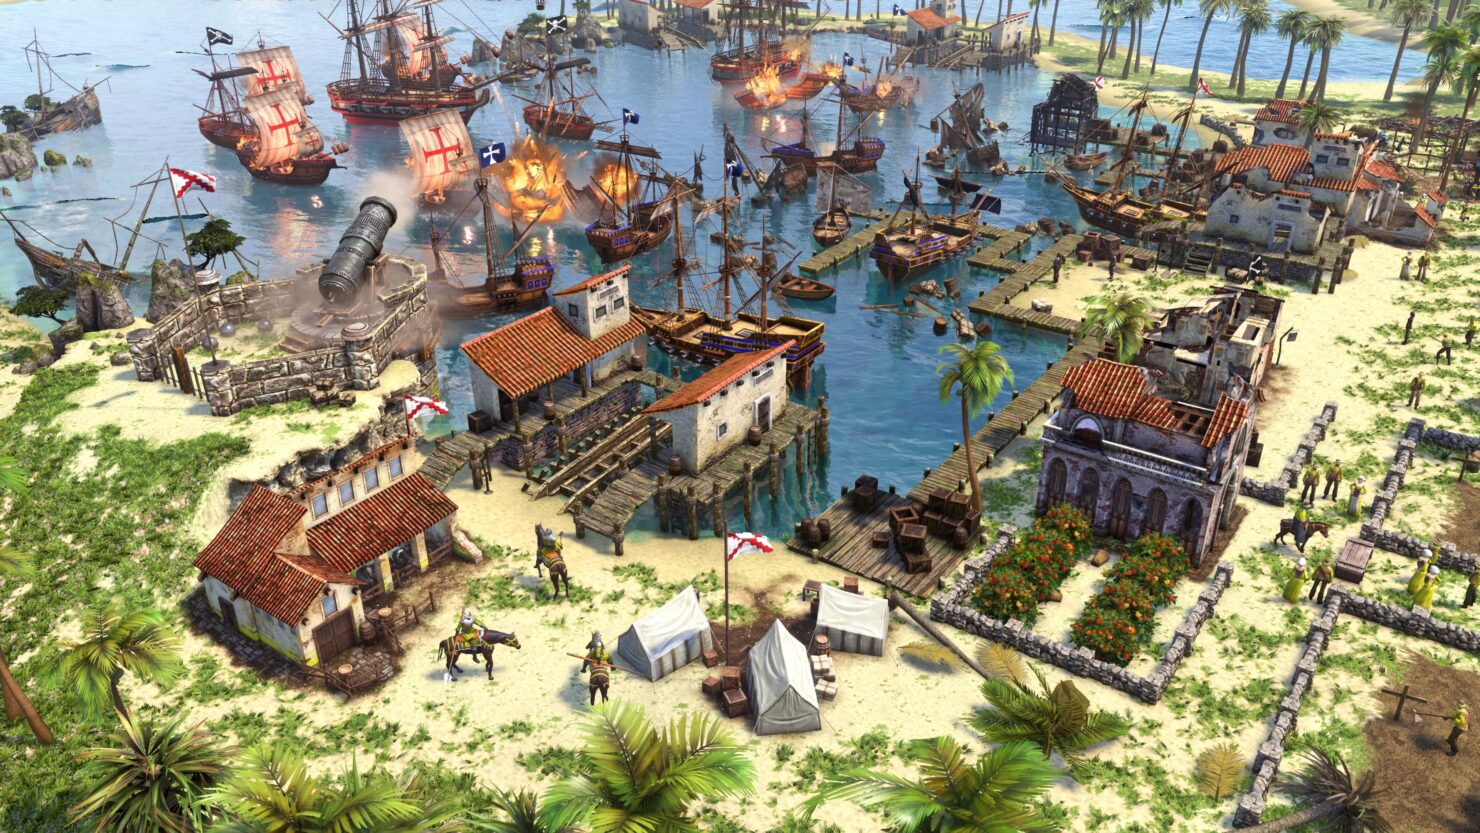 age-of-empires-iii-definitive-edition-preview-05-asset-6